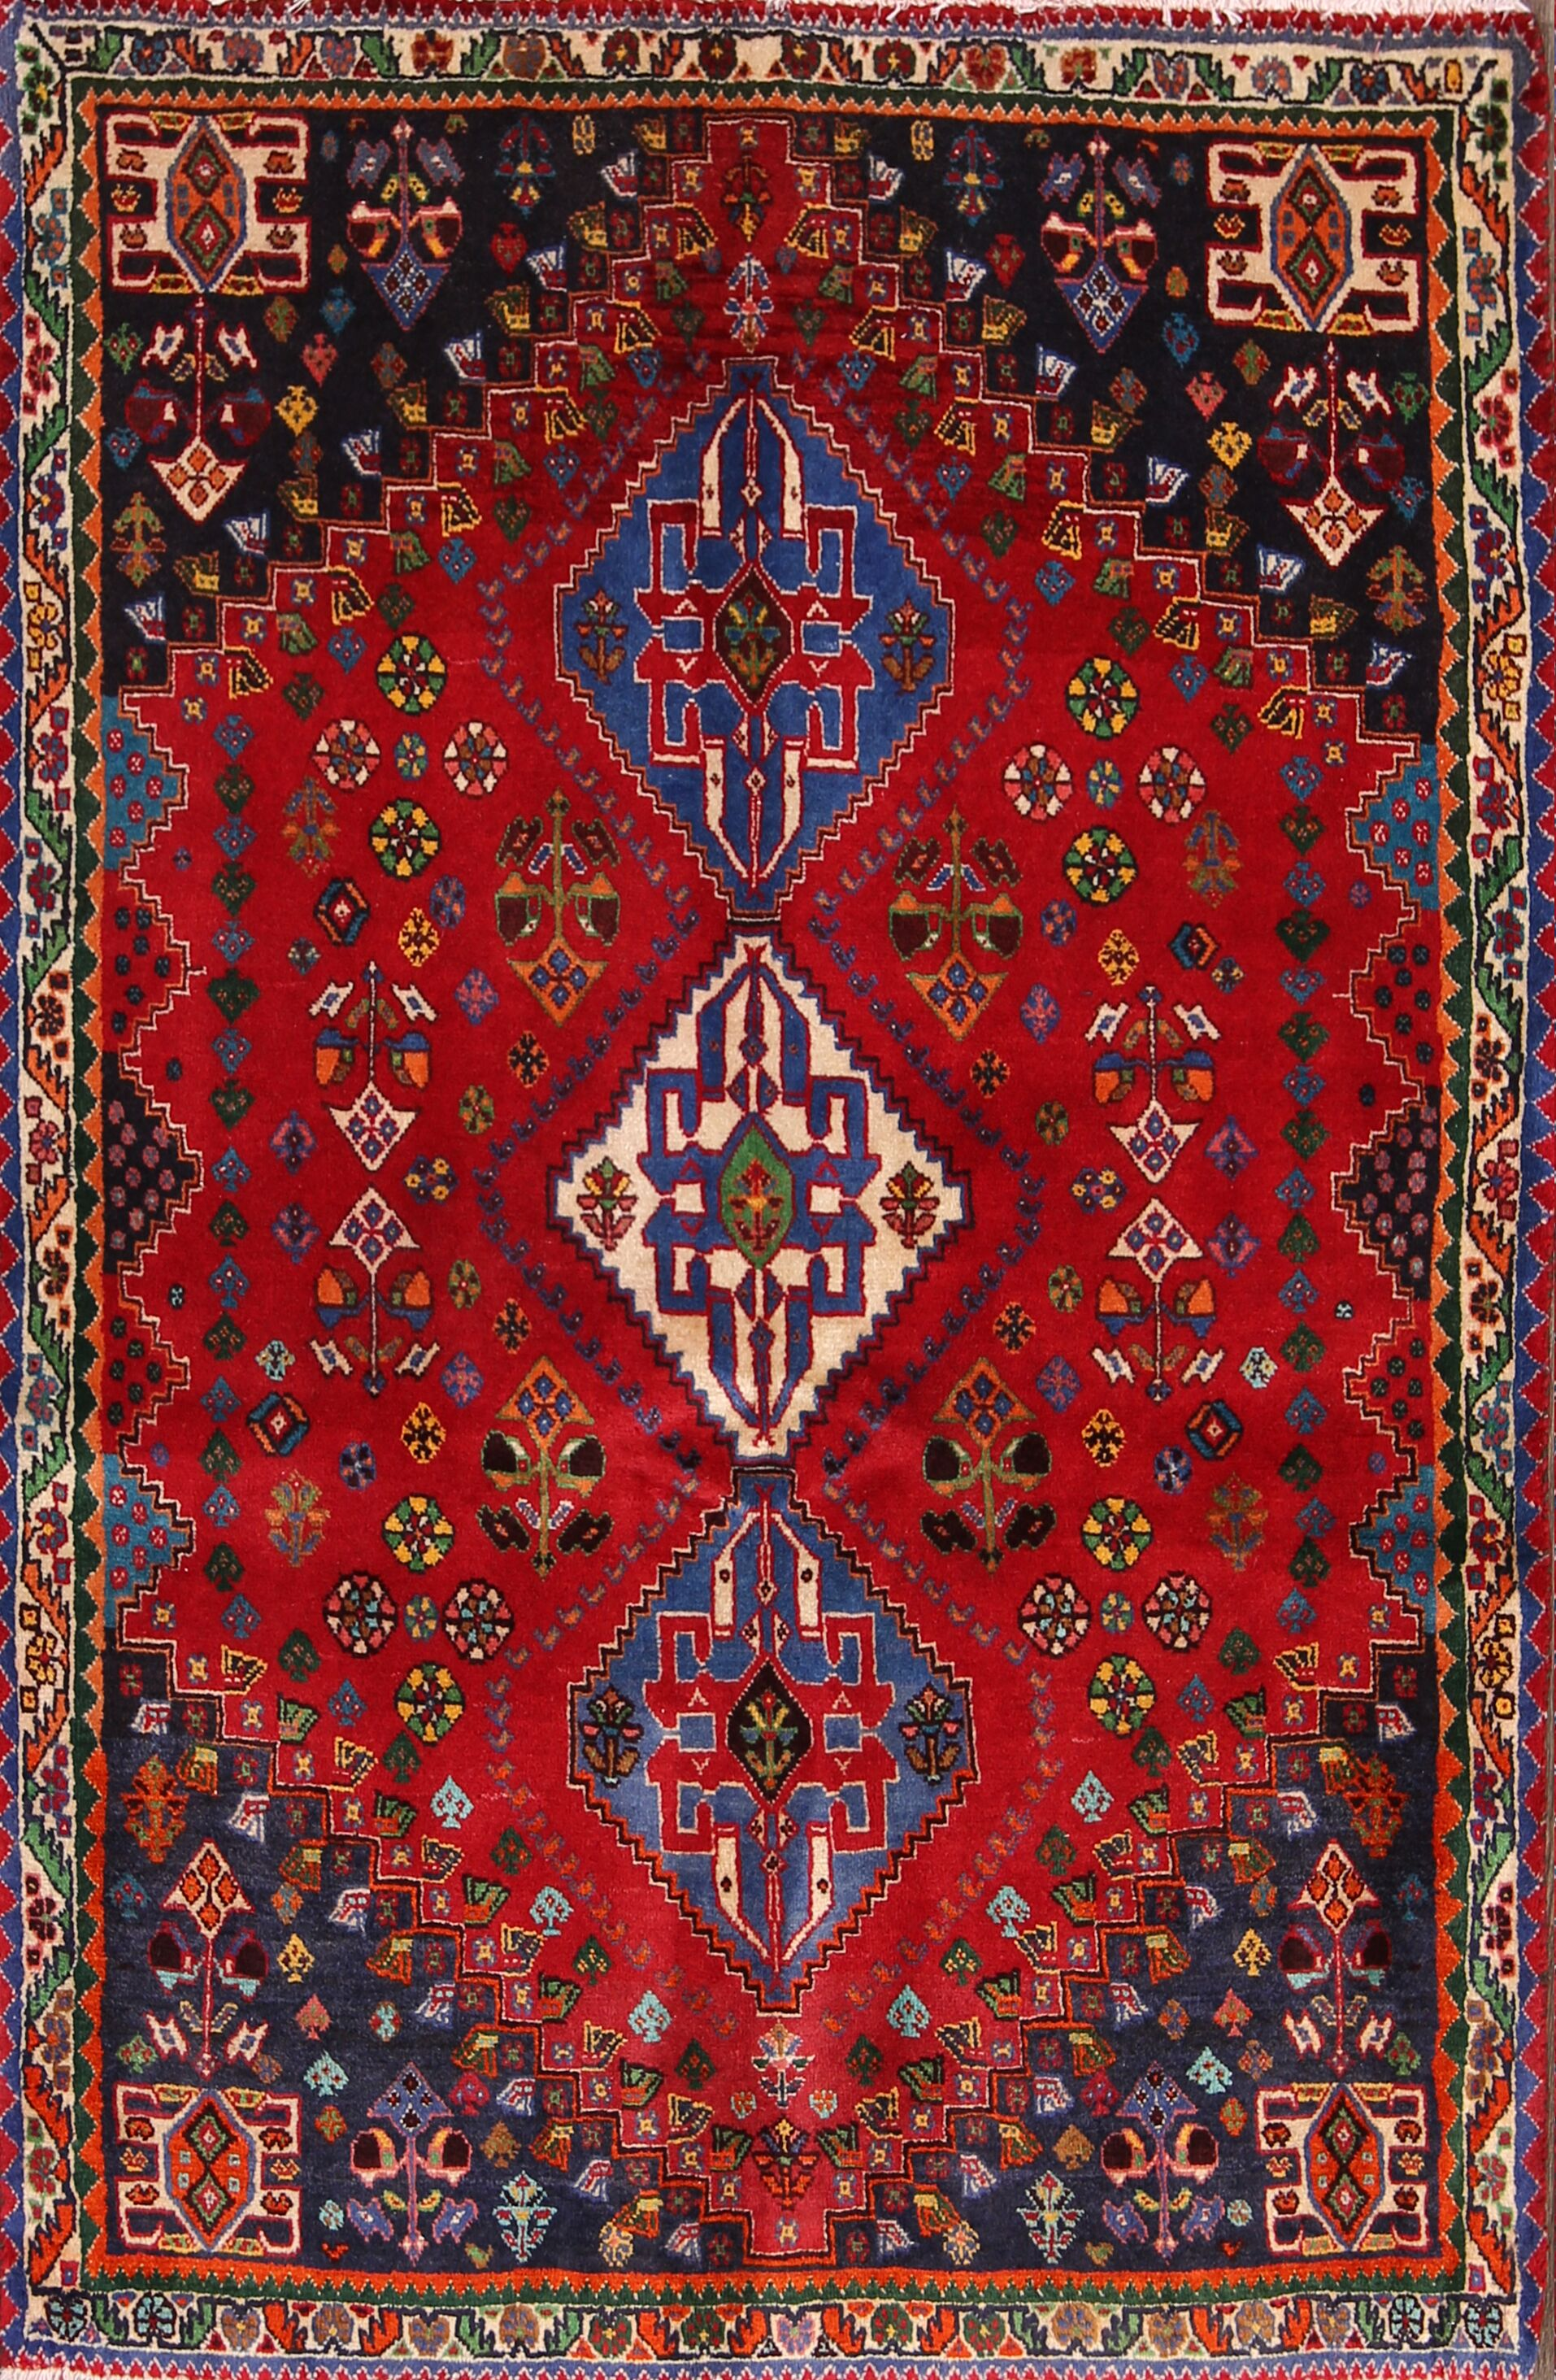 One-of-a-Kind Traditional Abadeh Shiraz Persian Hand-Knotted 3'5